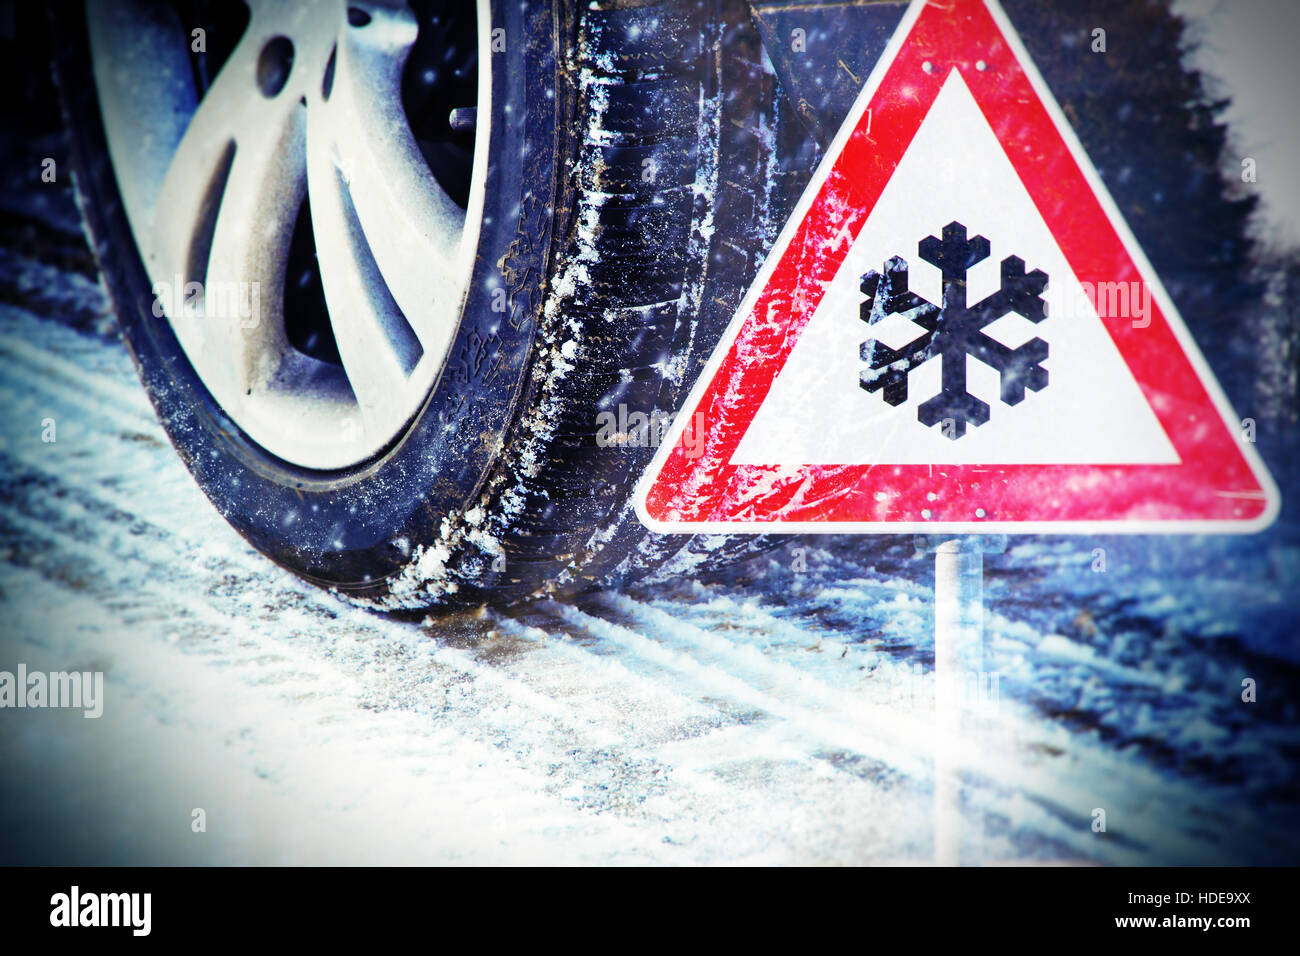 Car tires on winter road with traffic sign Stock Photo